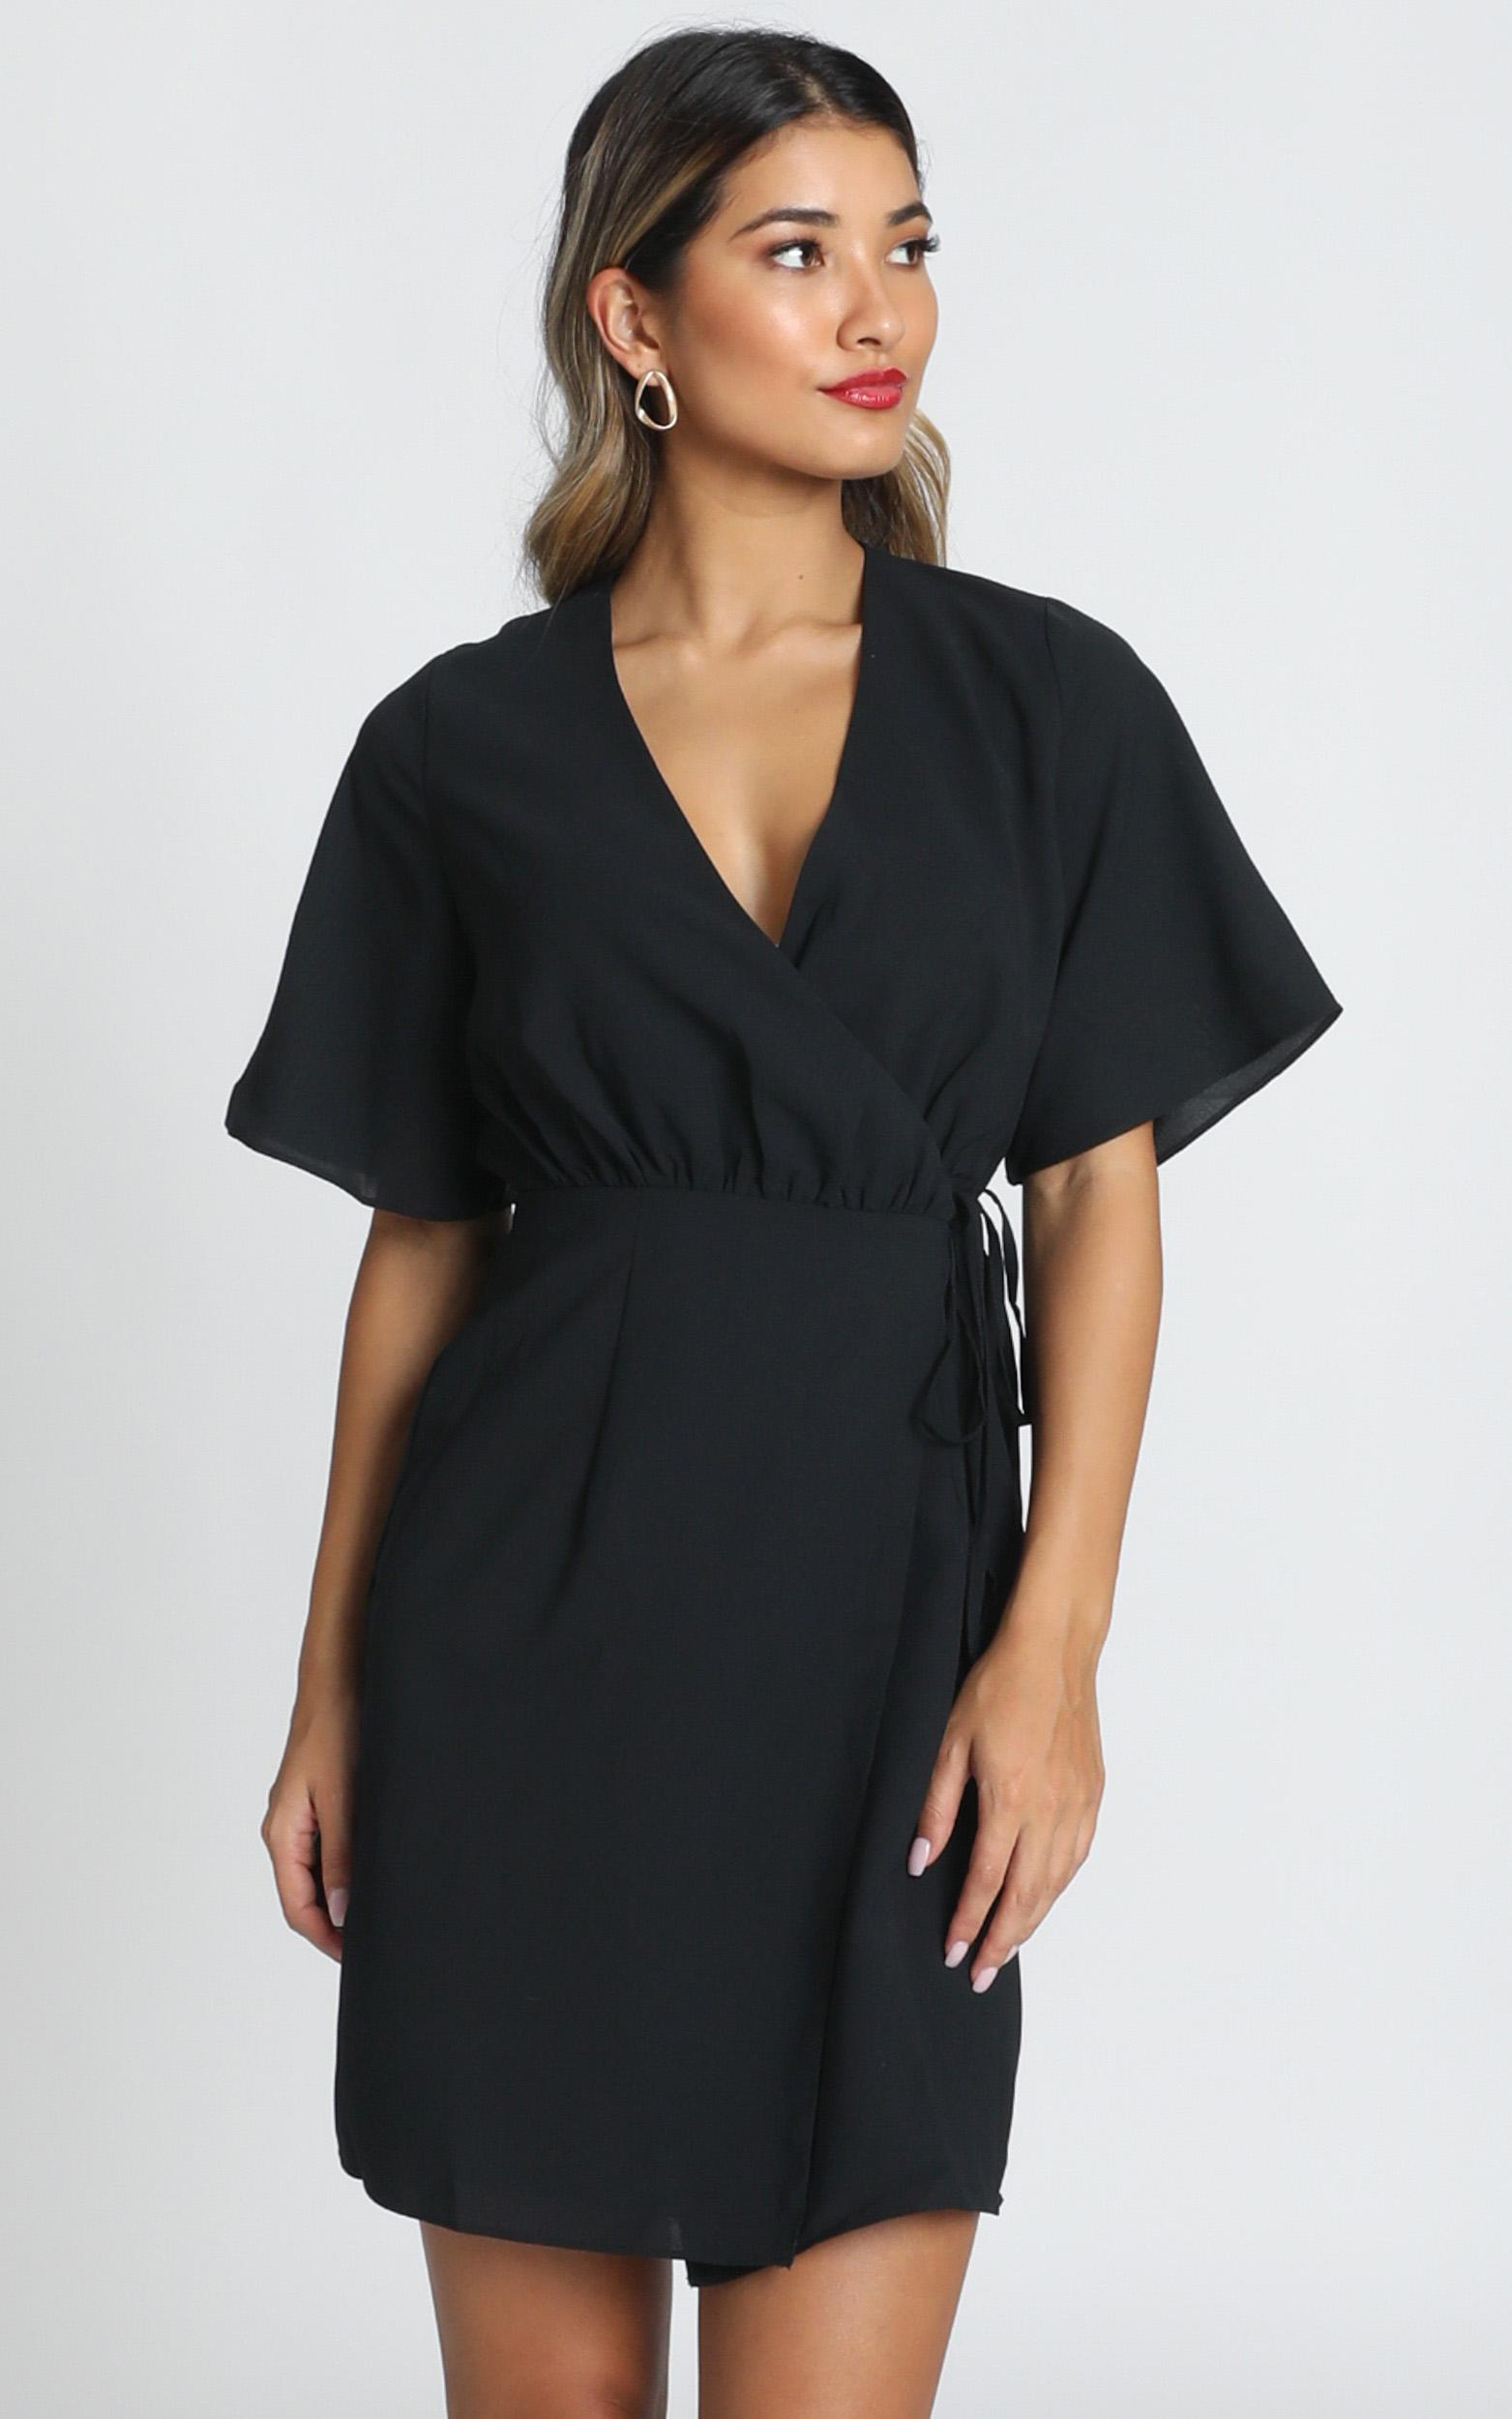 New Memo Dress in black - 20 (XXXXL), Black, hi-res image number null